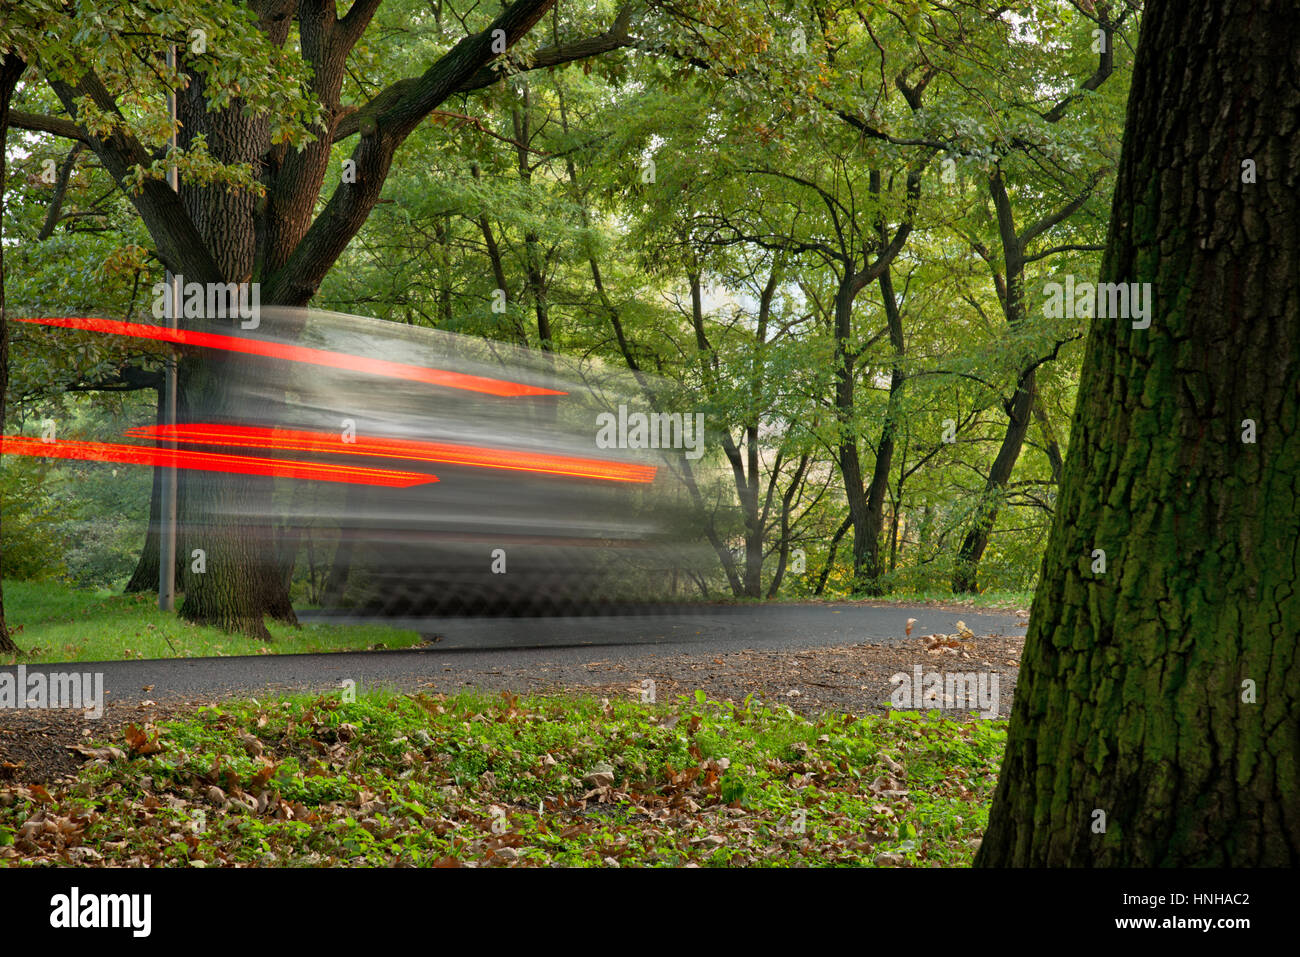 Fast going car in the park with trunk of tree - Stock Image